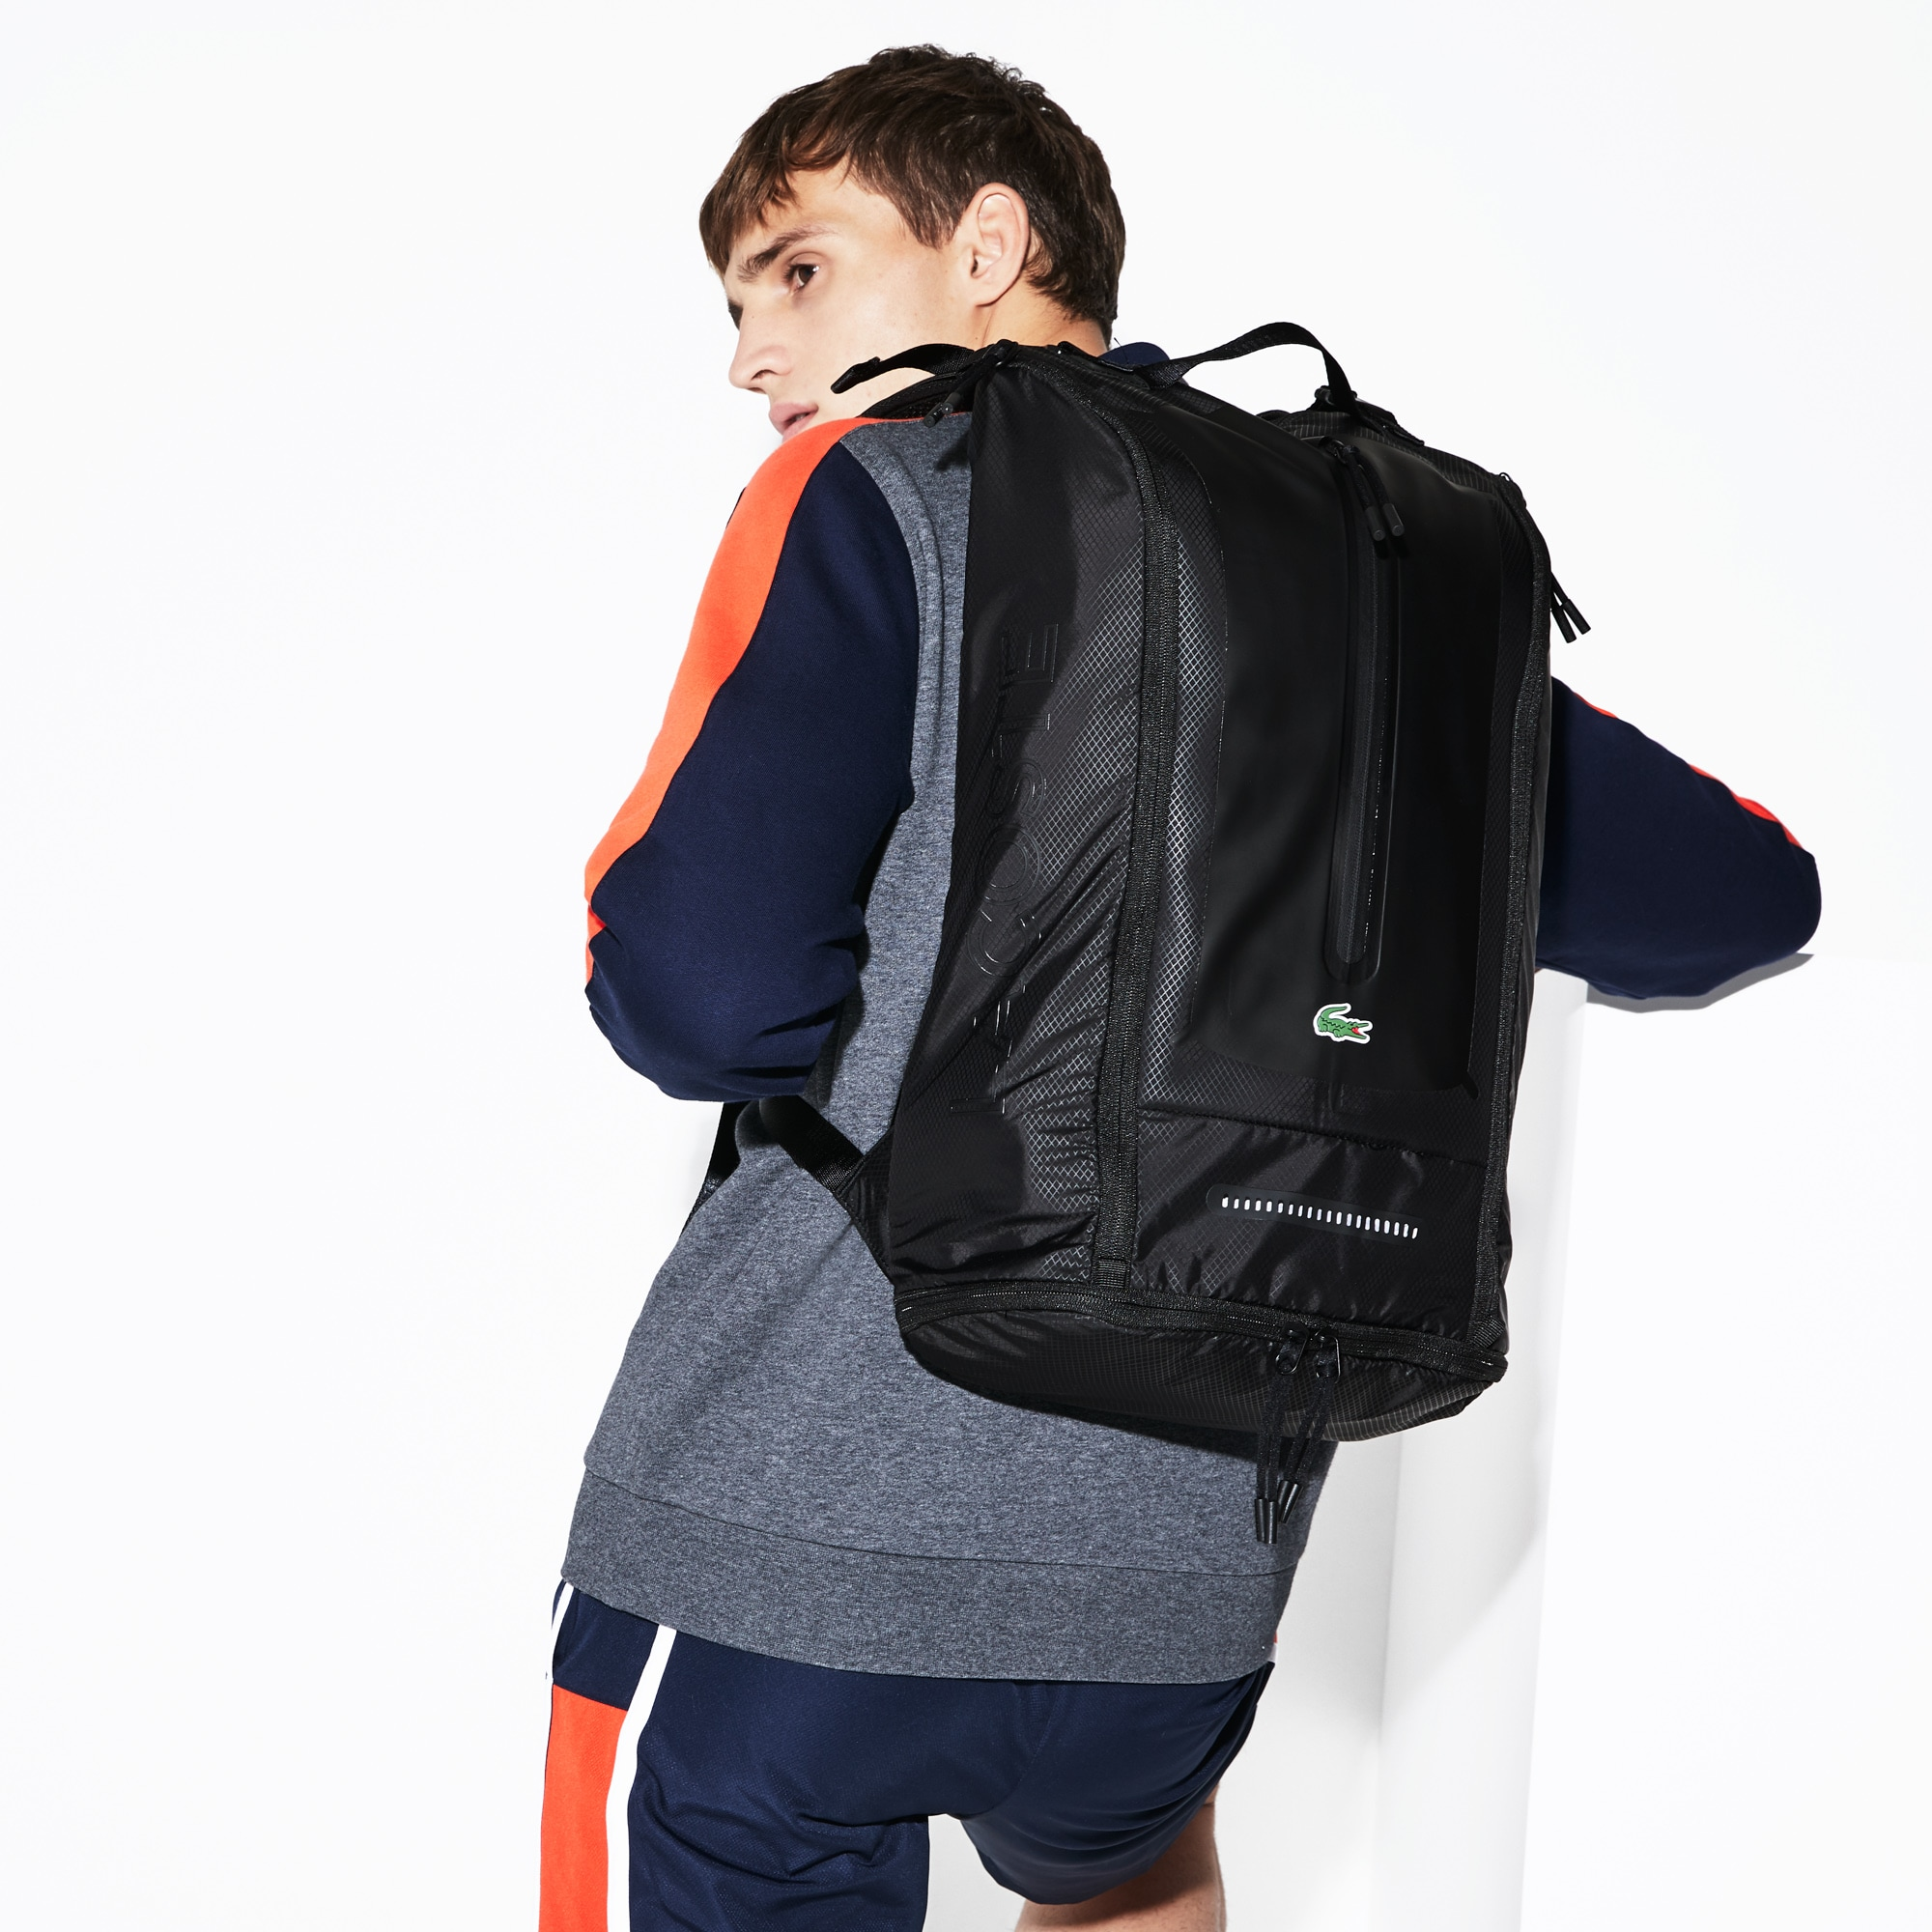 78a27c1fbd2 Men's Lacoste SPORT Match Point Nylon Backpack